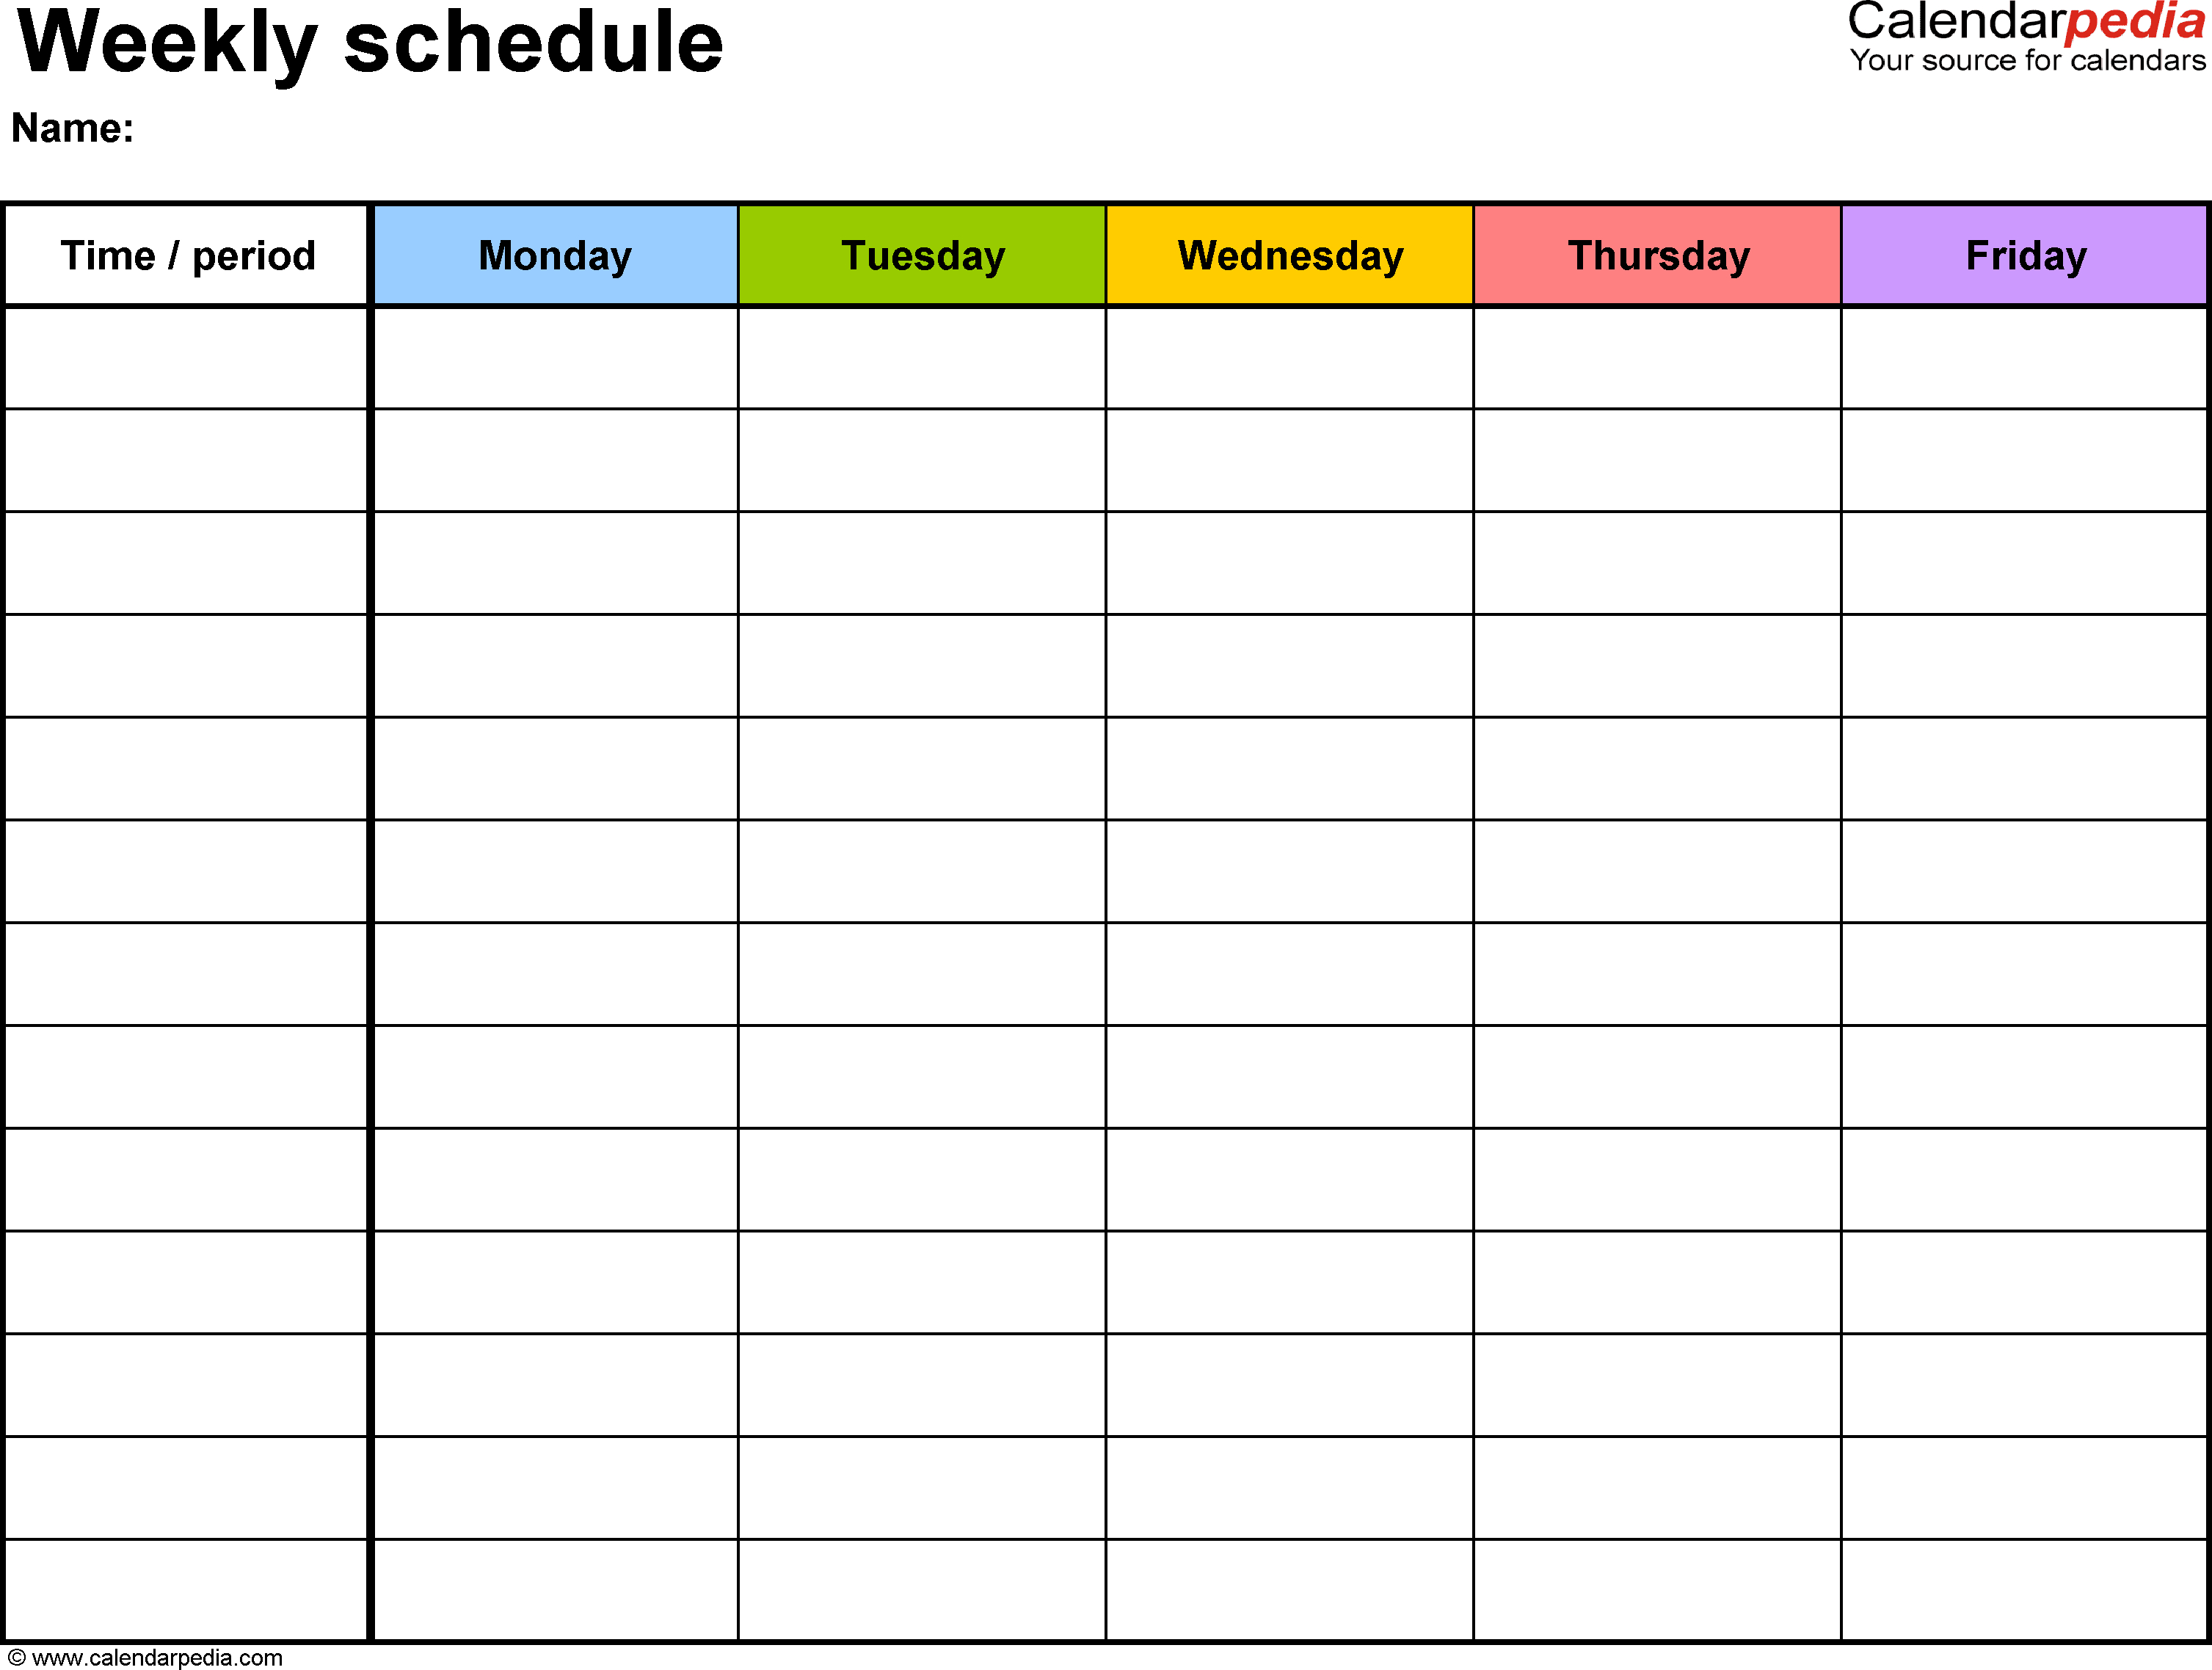 Free Weekly Schedule Templates For Excel   18 Templates For Employee Hours Spreadsheet